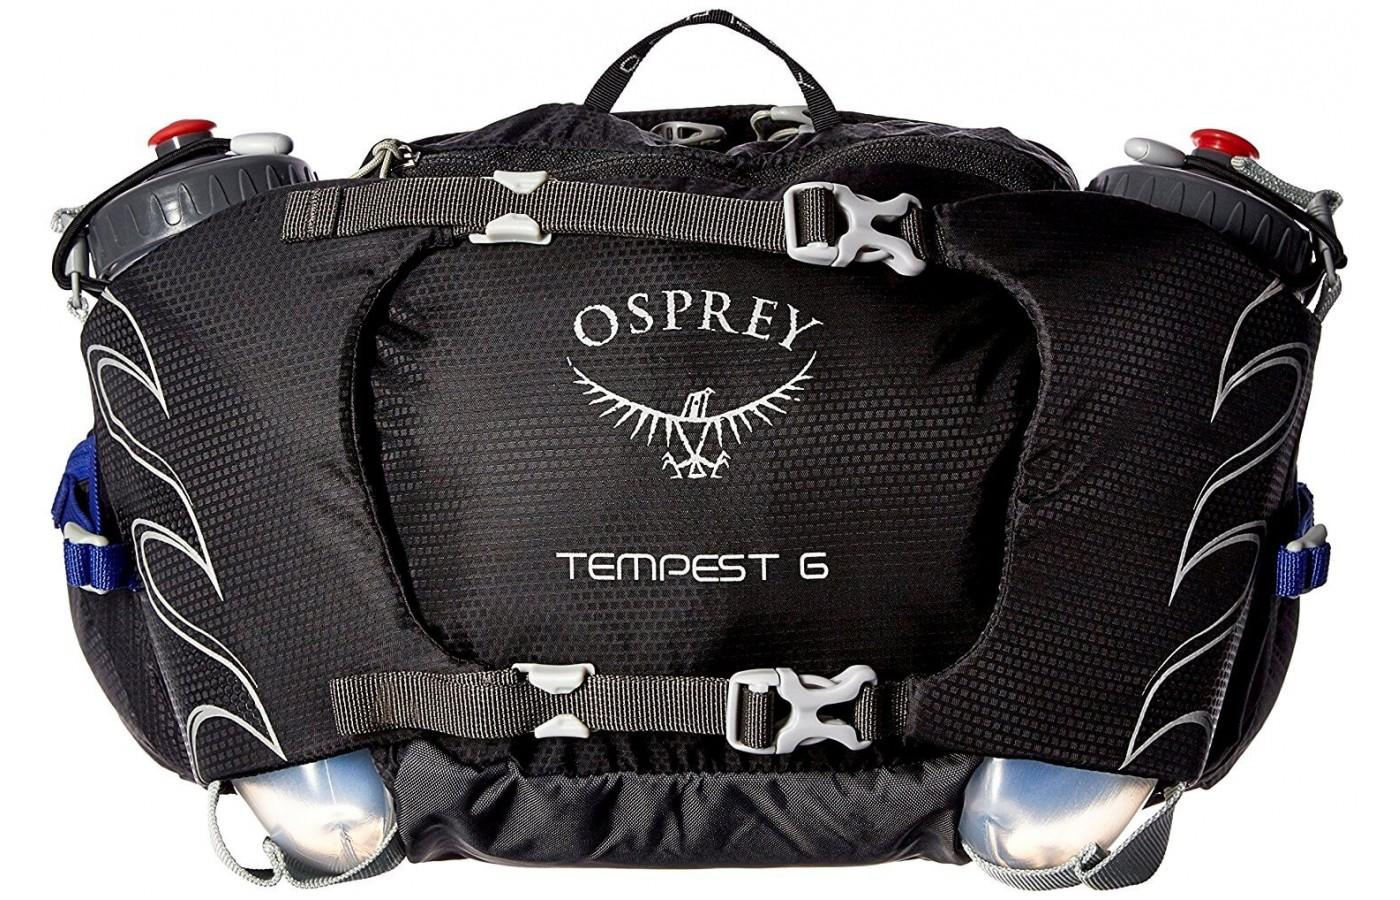 Osprey Tempest 6 is economic pack for long runs